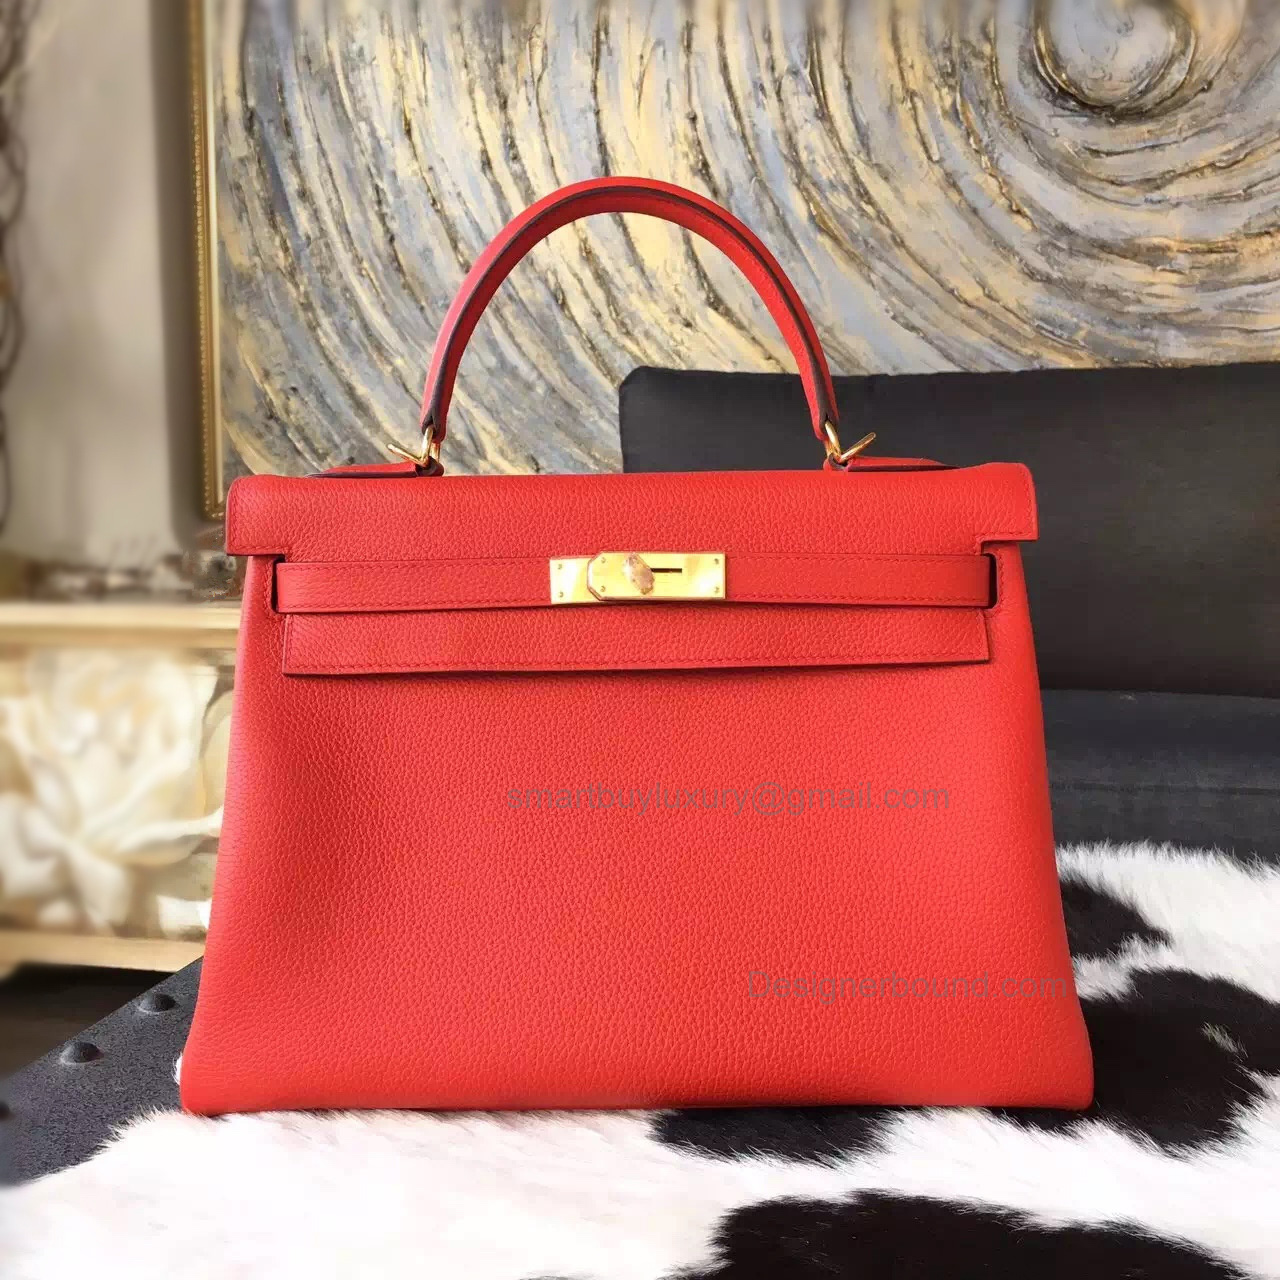 Hand Stitched Hermes Kelly 32 Copy Bag in q5 Rouge Casaque Togo Calfskin GHW